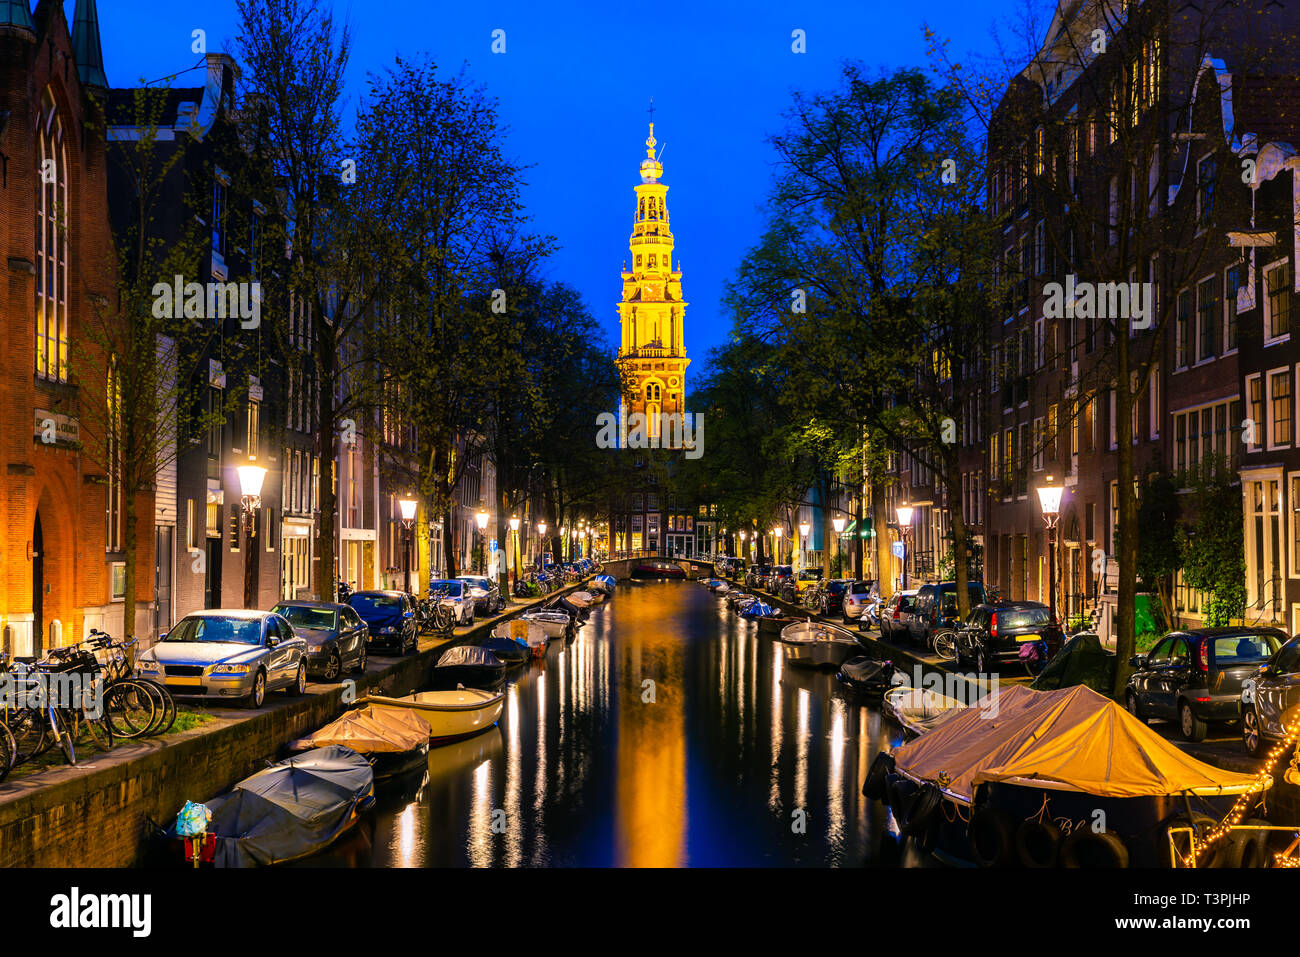 Amsterdam Zuiderkerk church tower at the end of a canal in the city of Amsterdam, Netherlands at night . - Stock Image